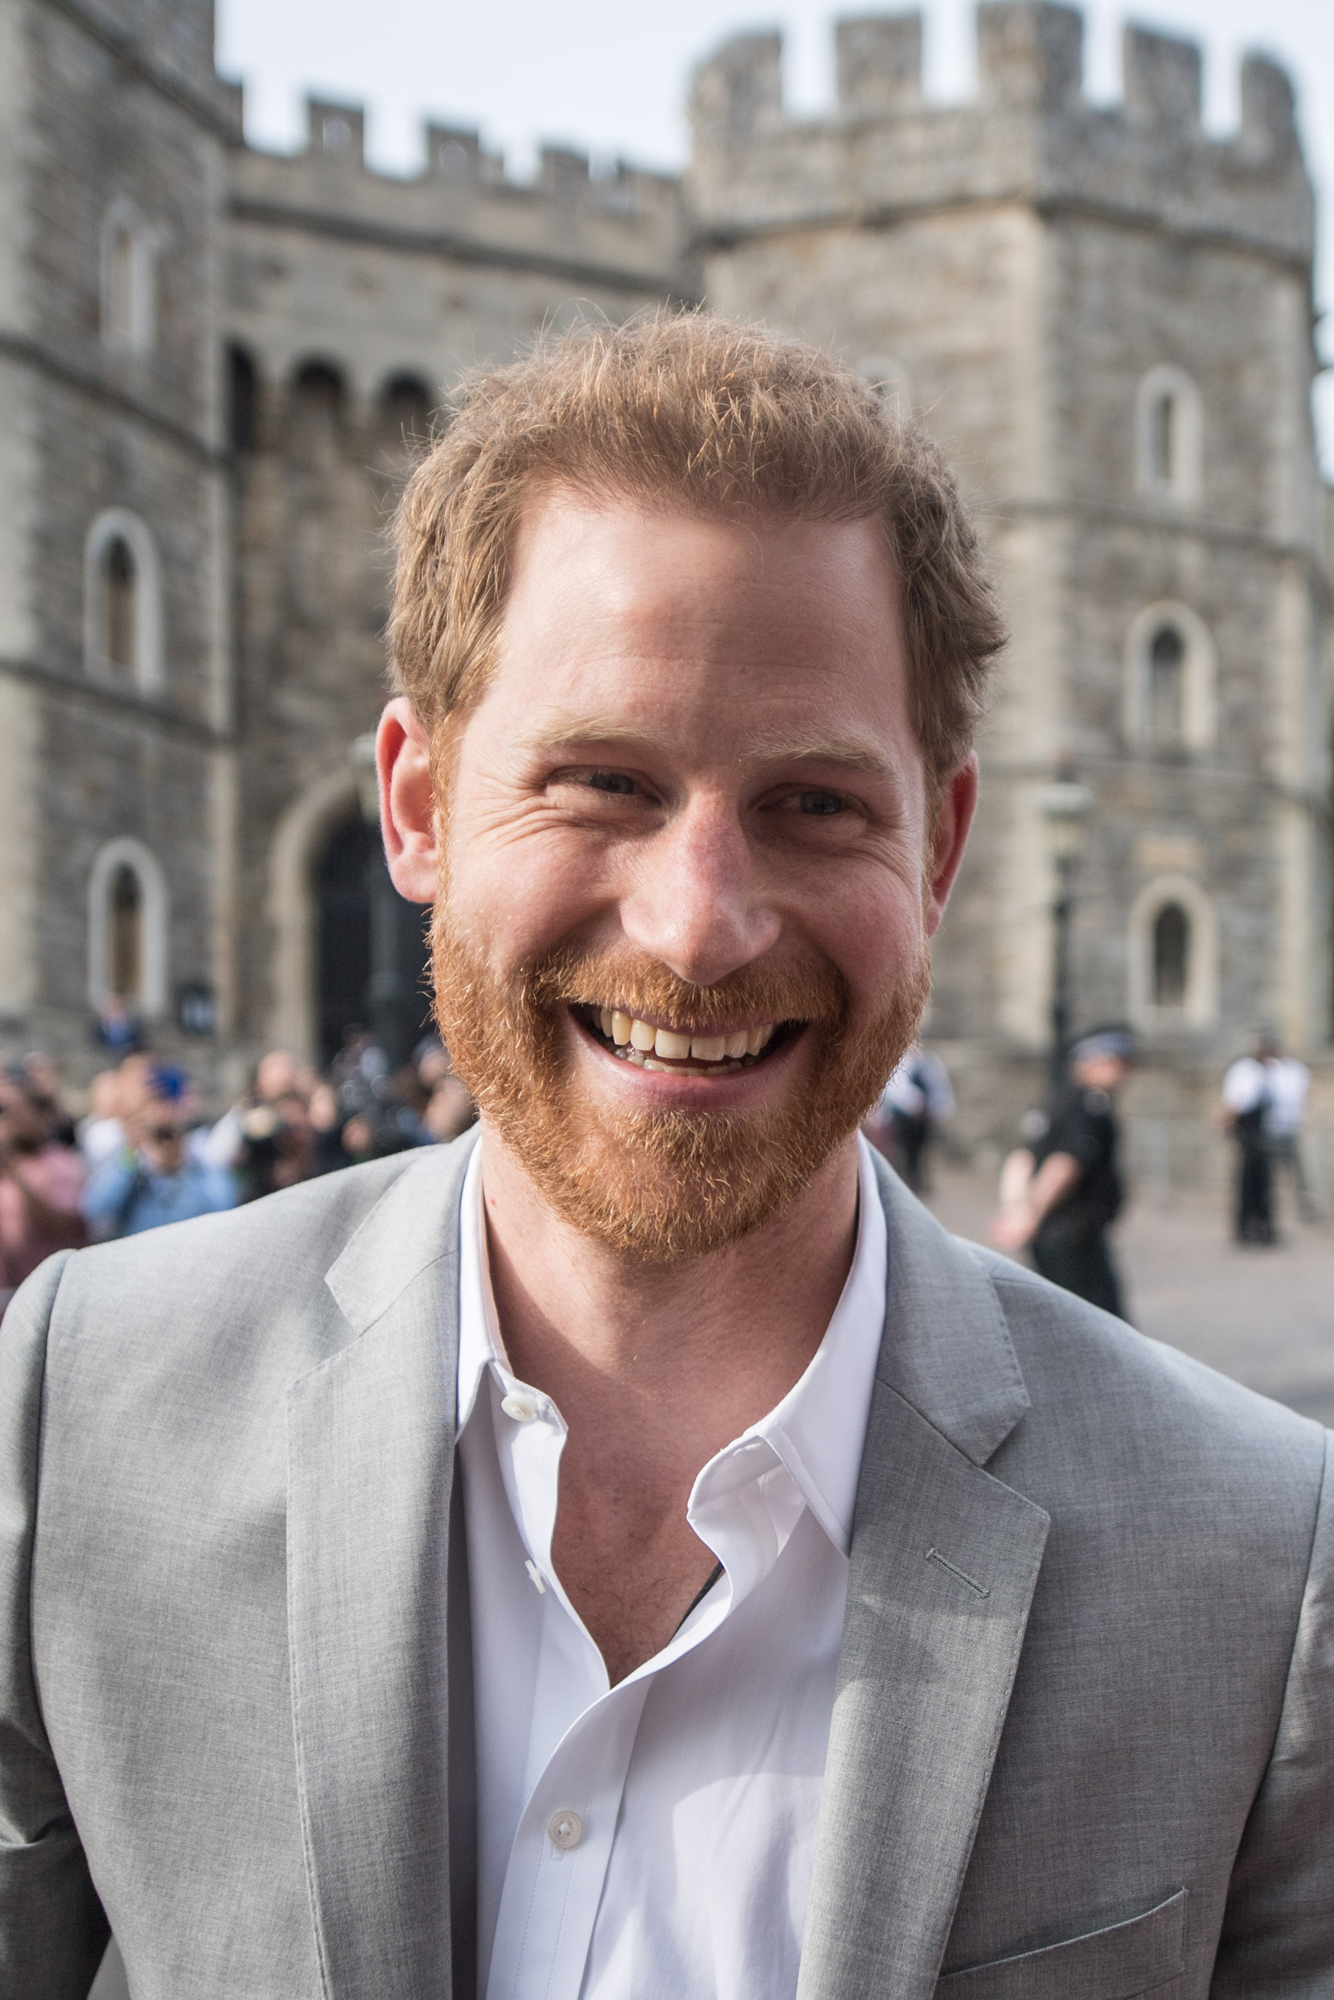 Prince Harry outside Windsor Castle